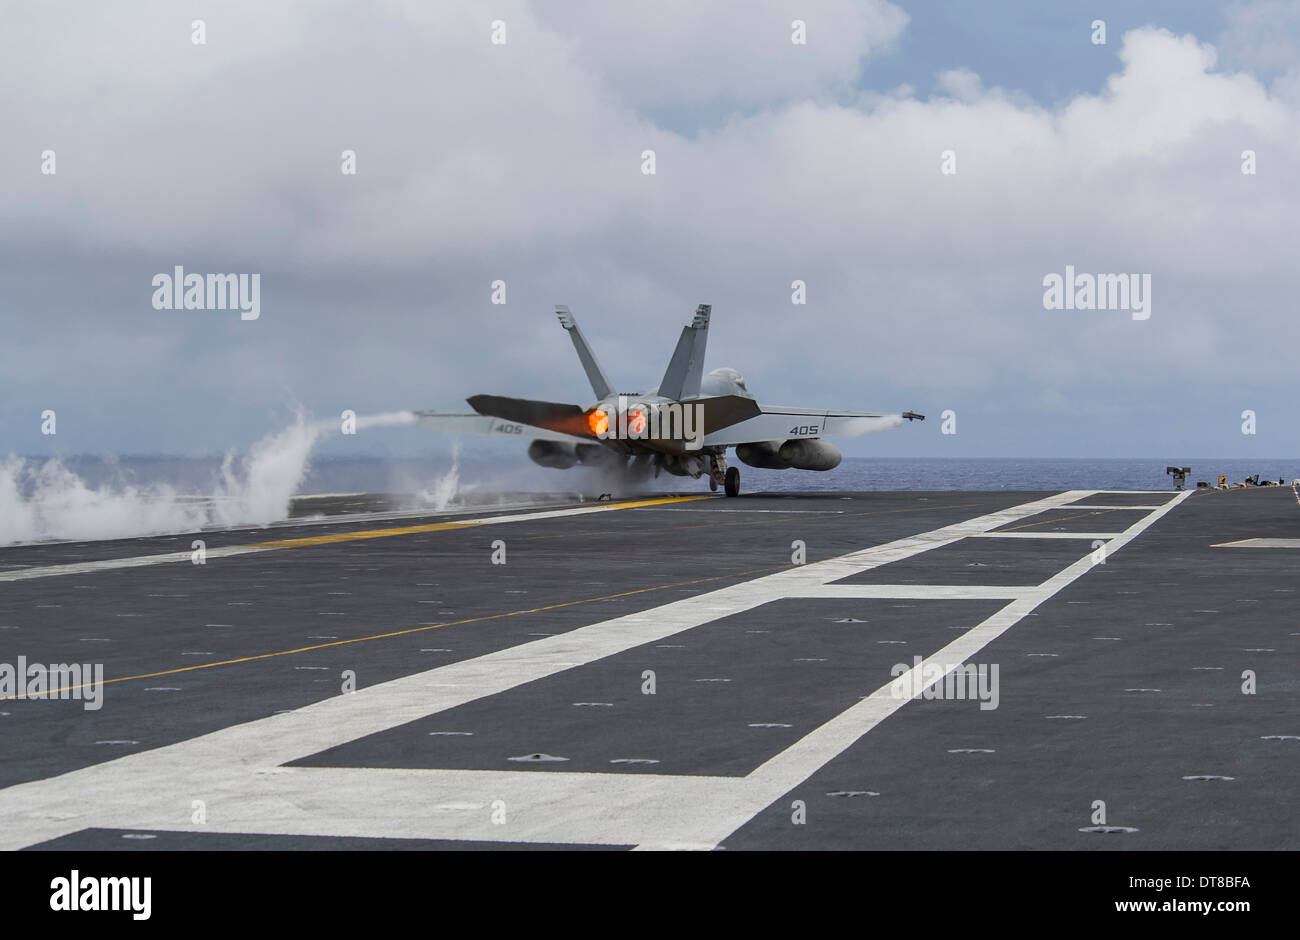 An F/A-18E Super Hornet takes off from the flight deck of USS George Washington. - Stock Image